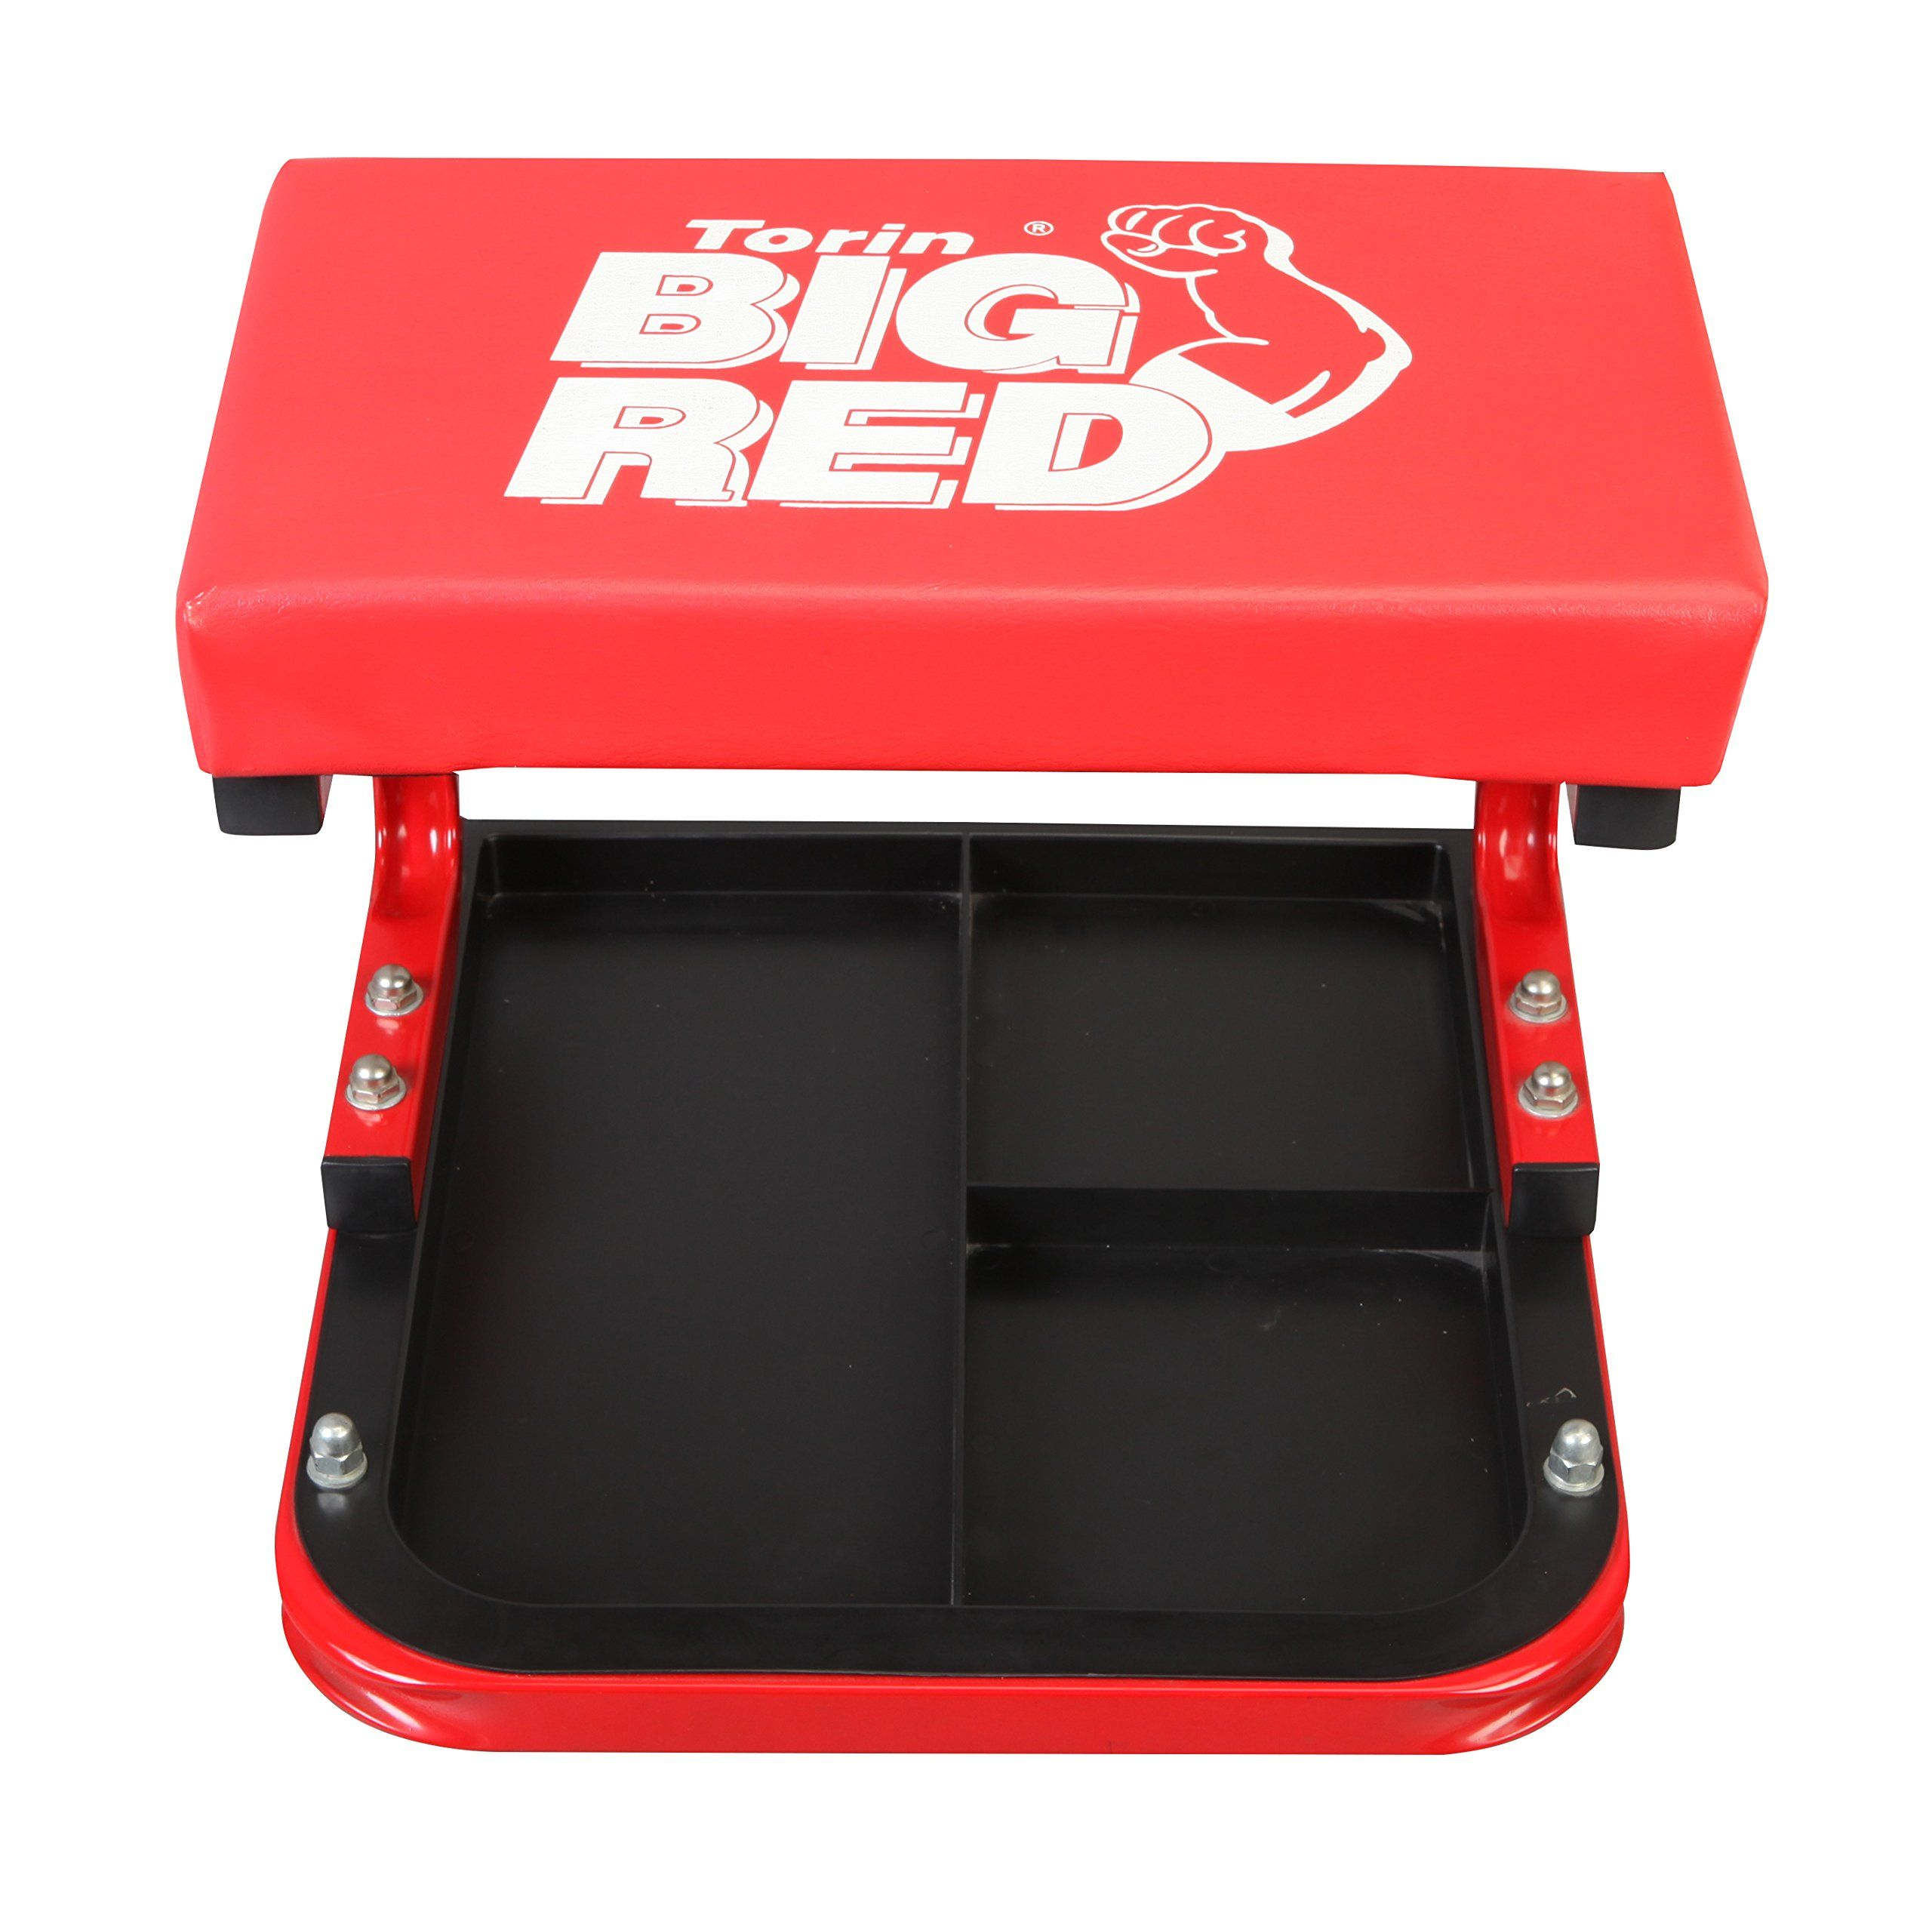 Torin Big Red Rolling Creeper Garage Shop Seat Padded Mechanic Stool With Tool Tray Red Ad Rolling Ad In 2020 Womens Skirt Outfits Garage Shop Mechanics Stool